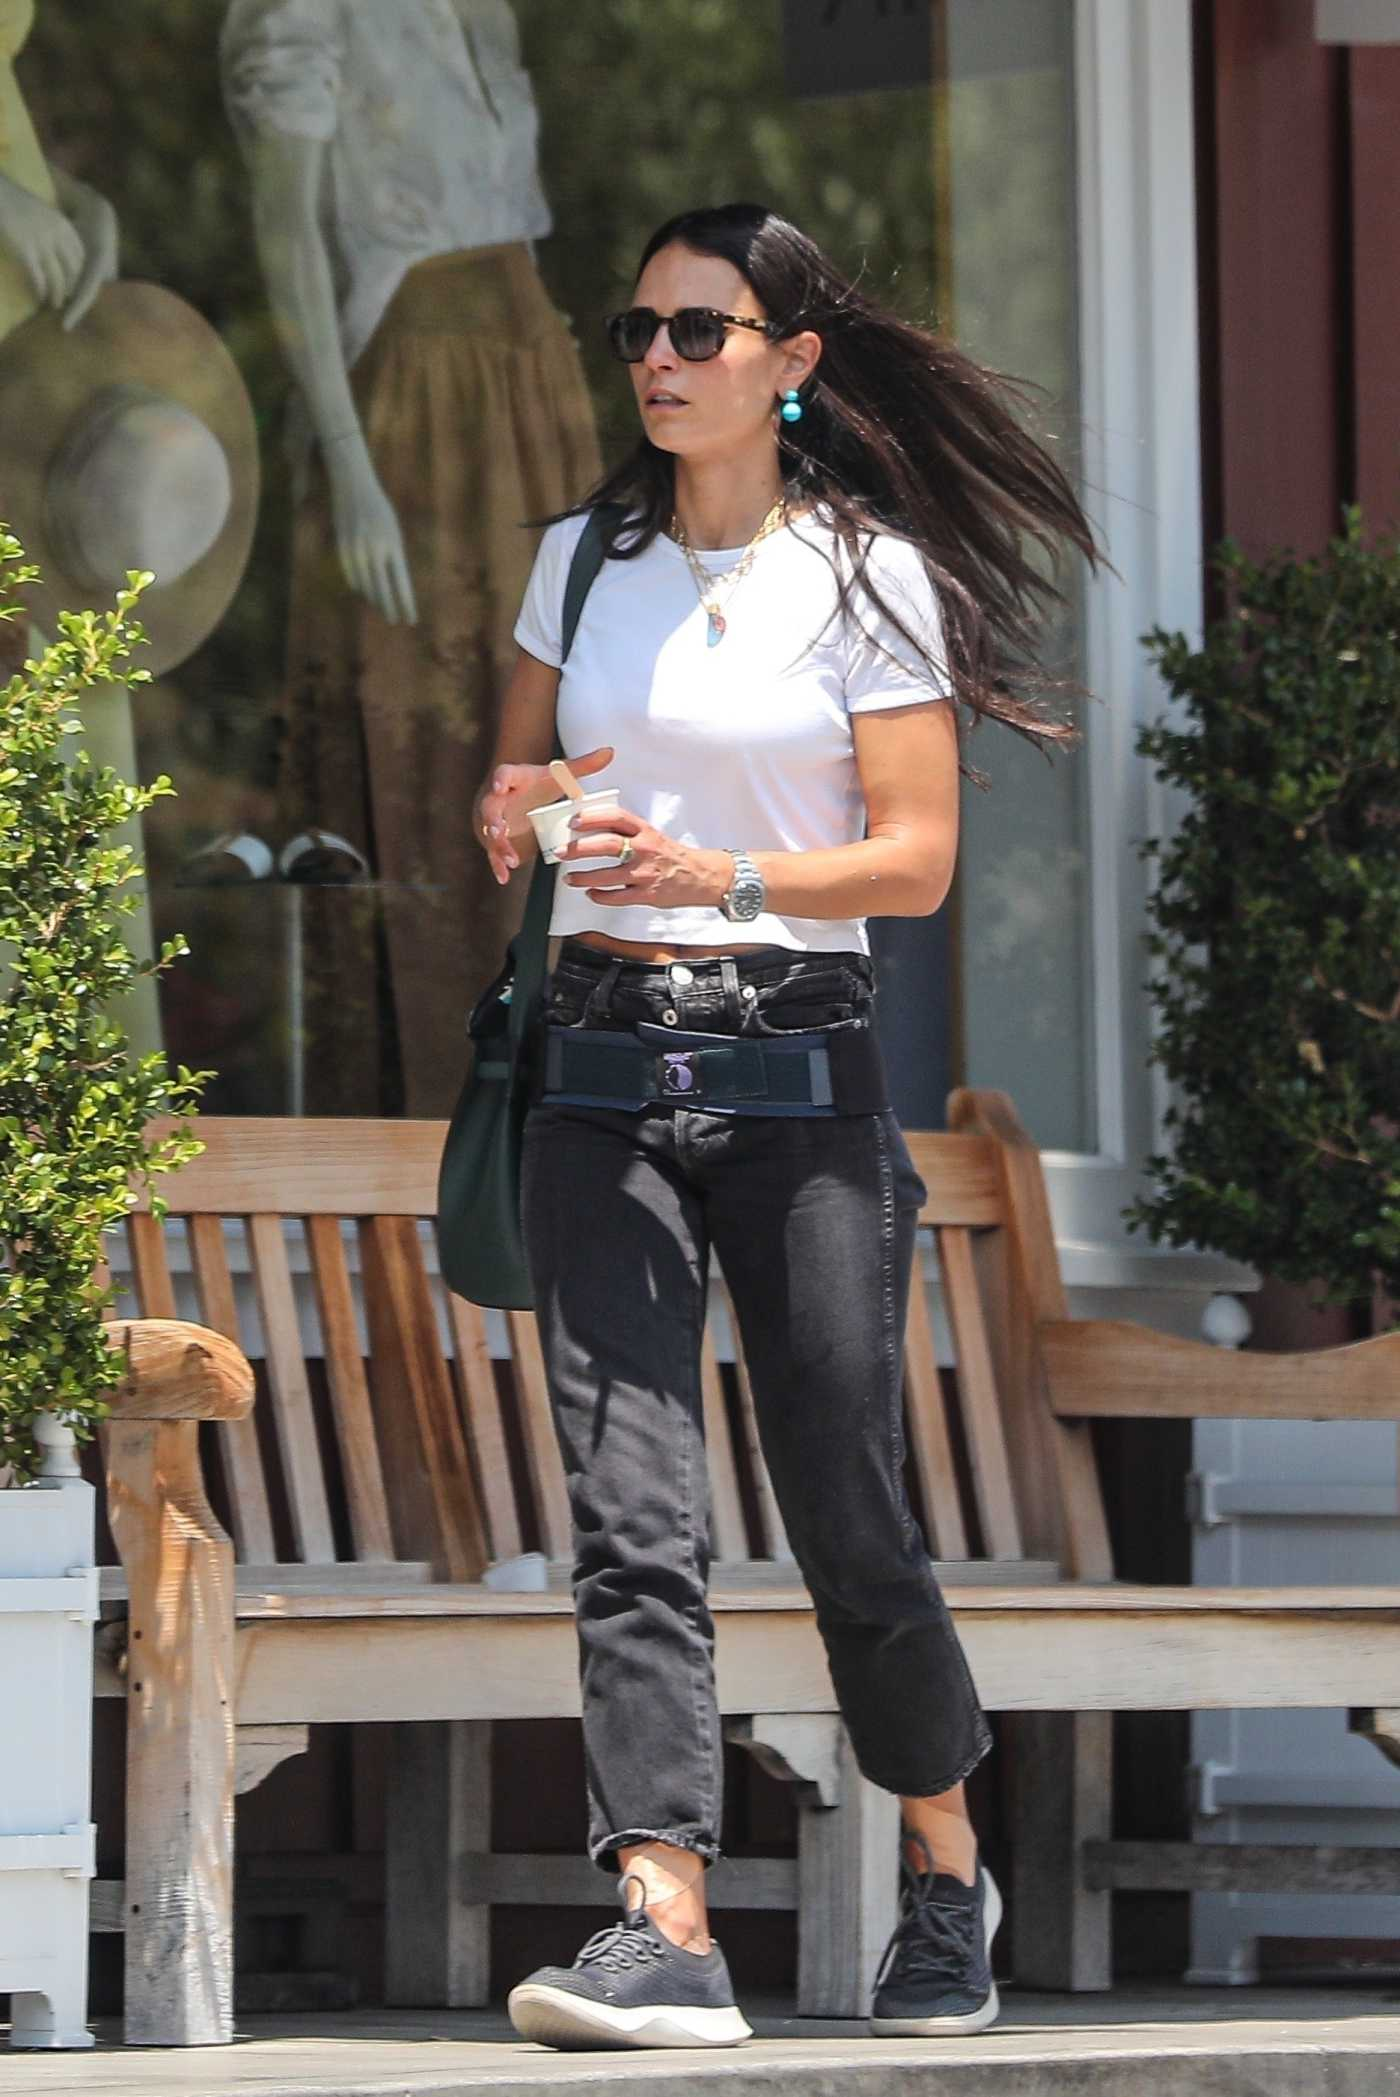 Jordana Brewster in a White Tee Was Seen Out in Brentwood 07/23/2021